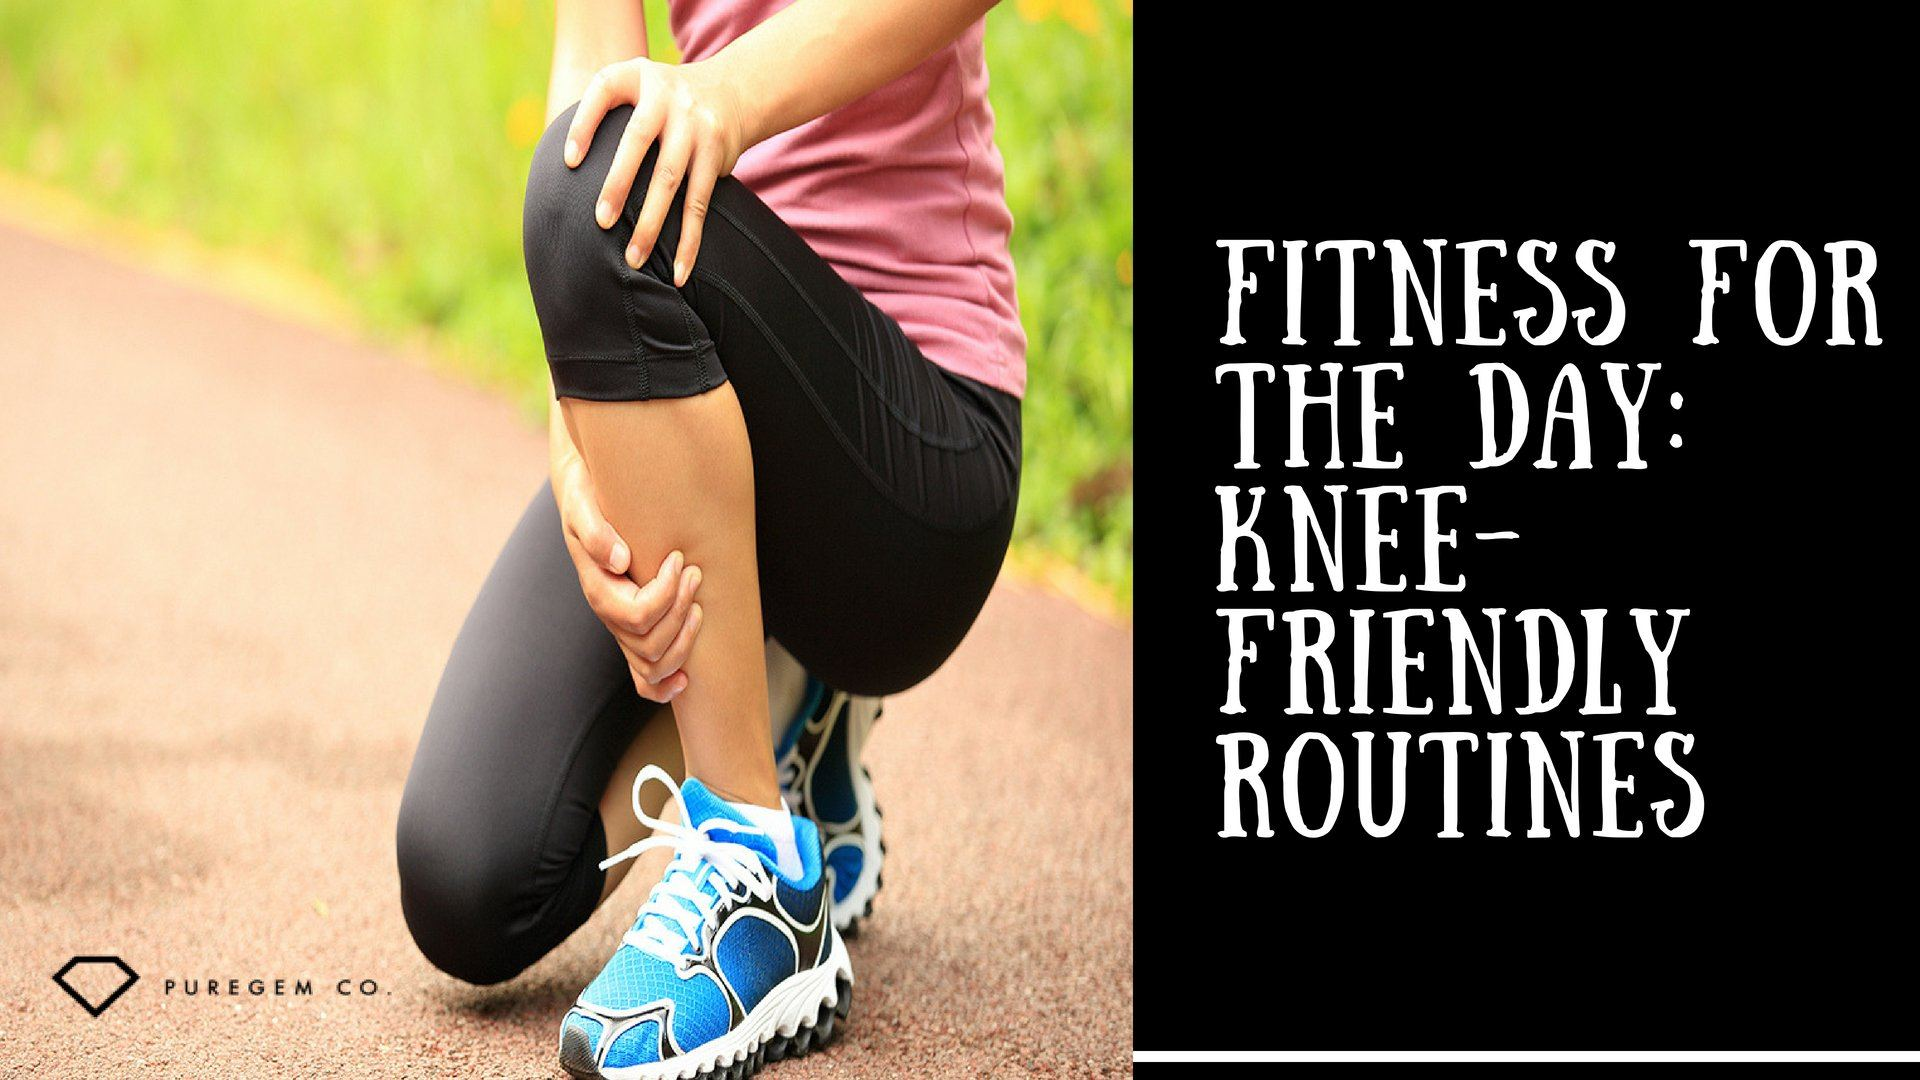 Fitness for the Day: Knee-Friendly Routines